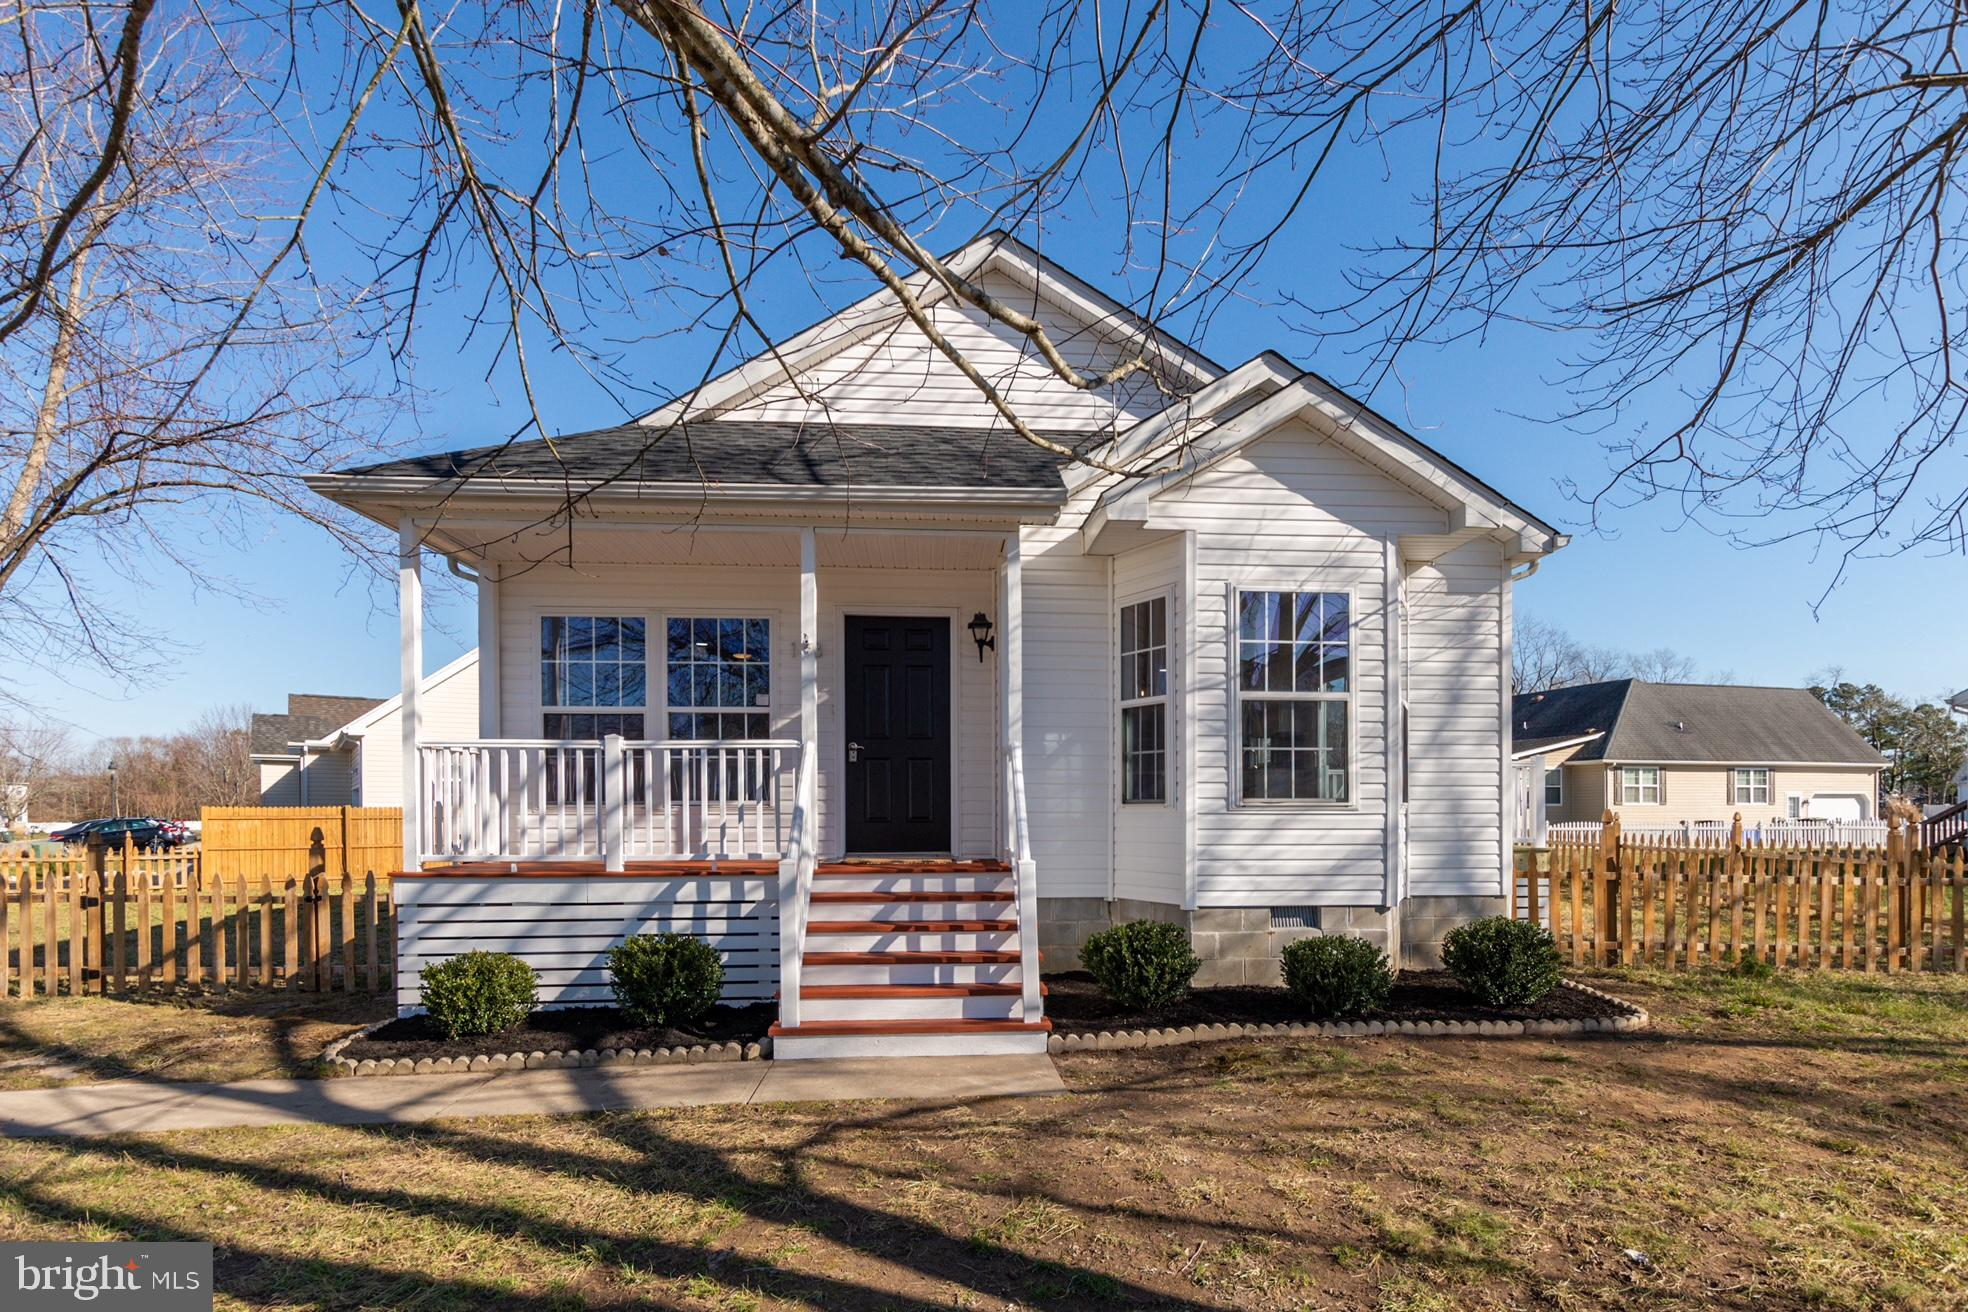 This 3 bedroom, 2 bath approximately 1400 square foot Berlin home has personality that pops.  New ro